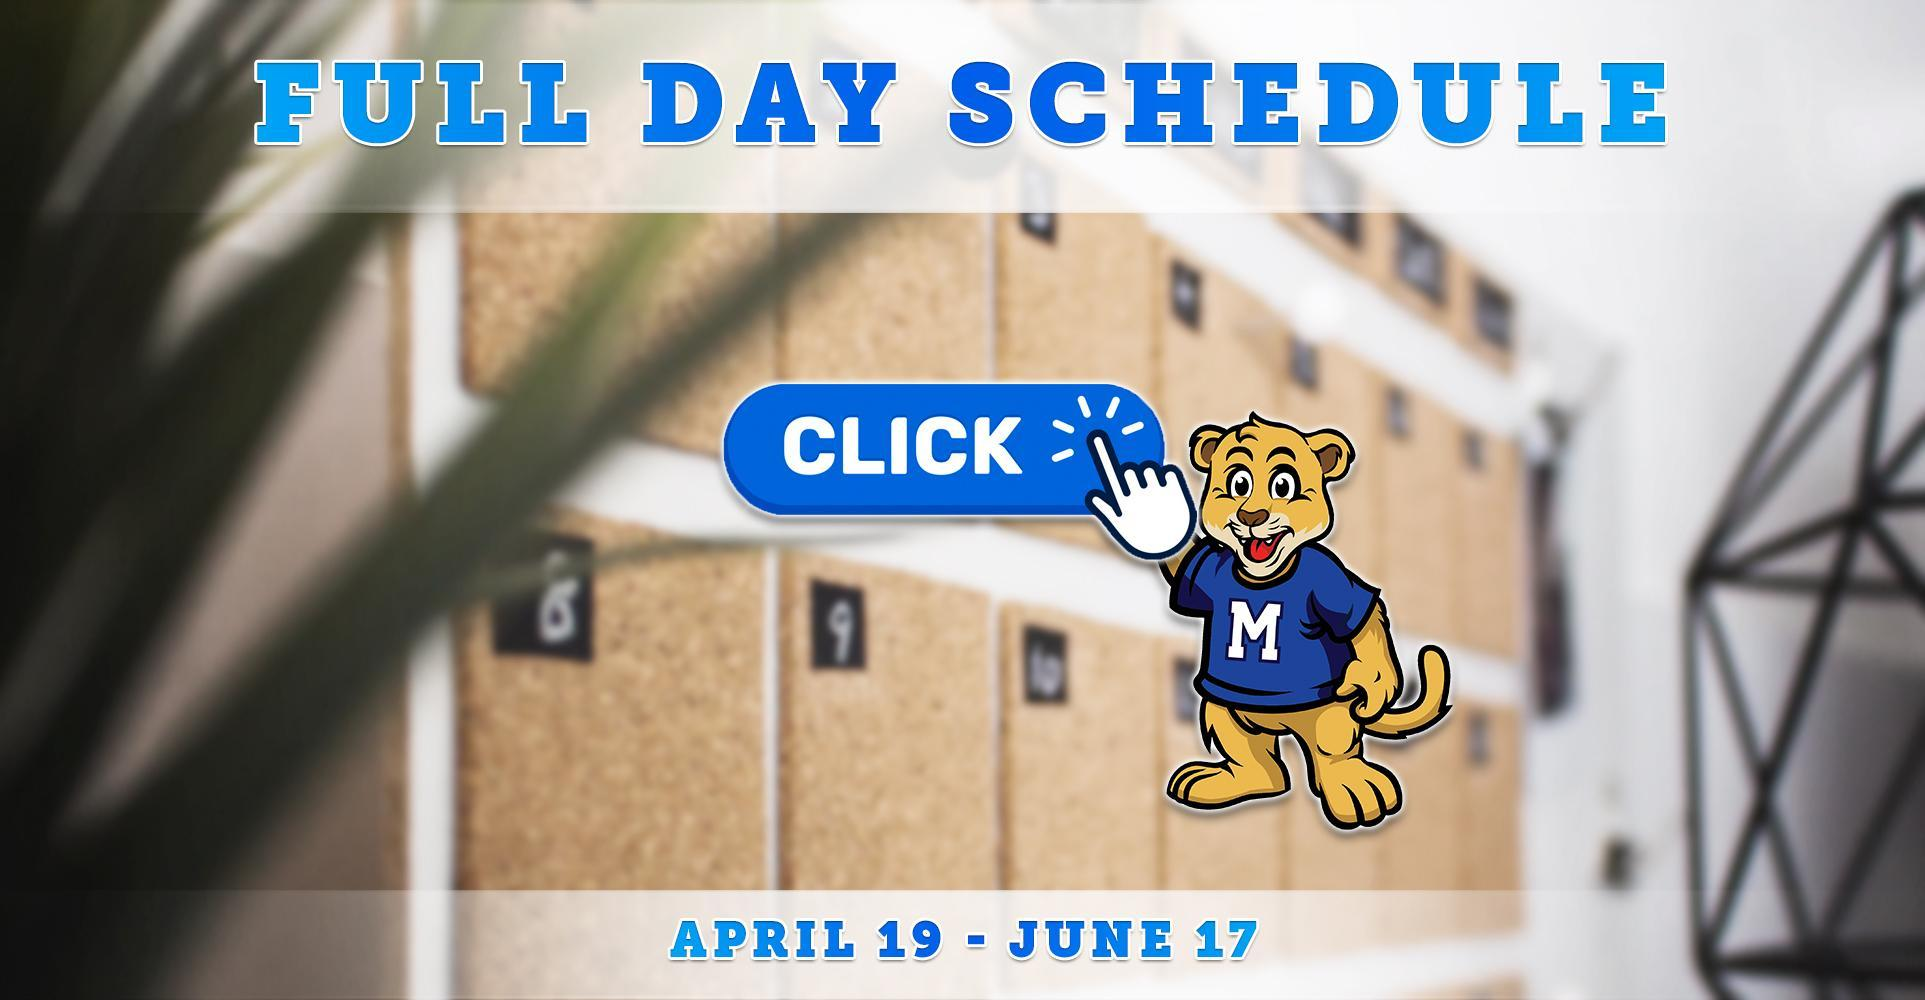 New Full Day Schedule Beginning April 19: Click to View!